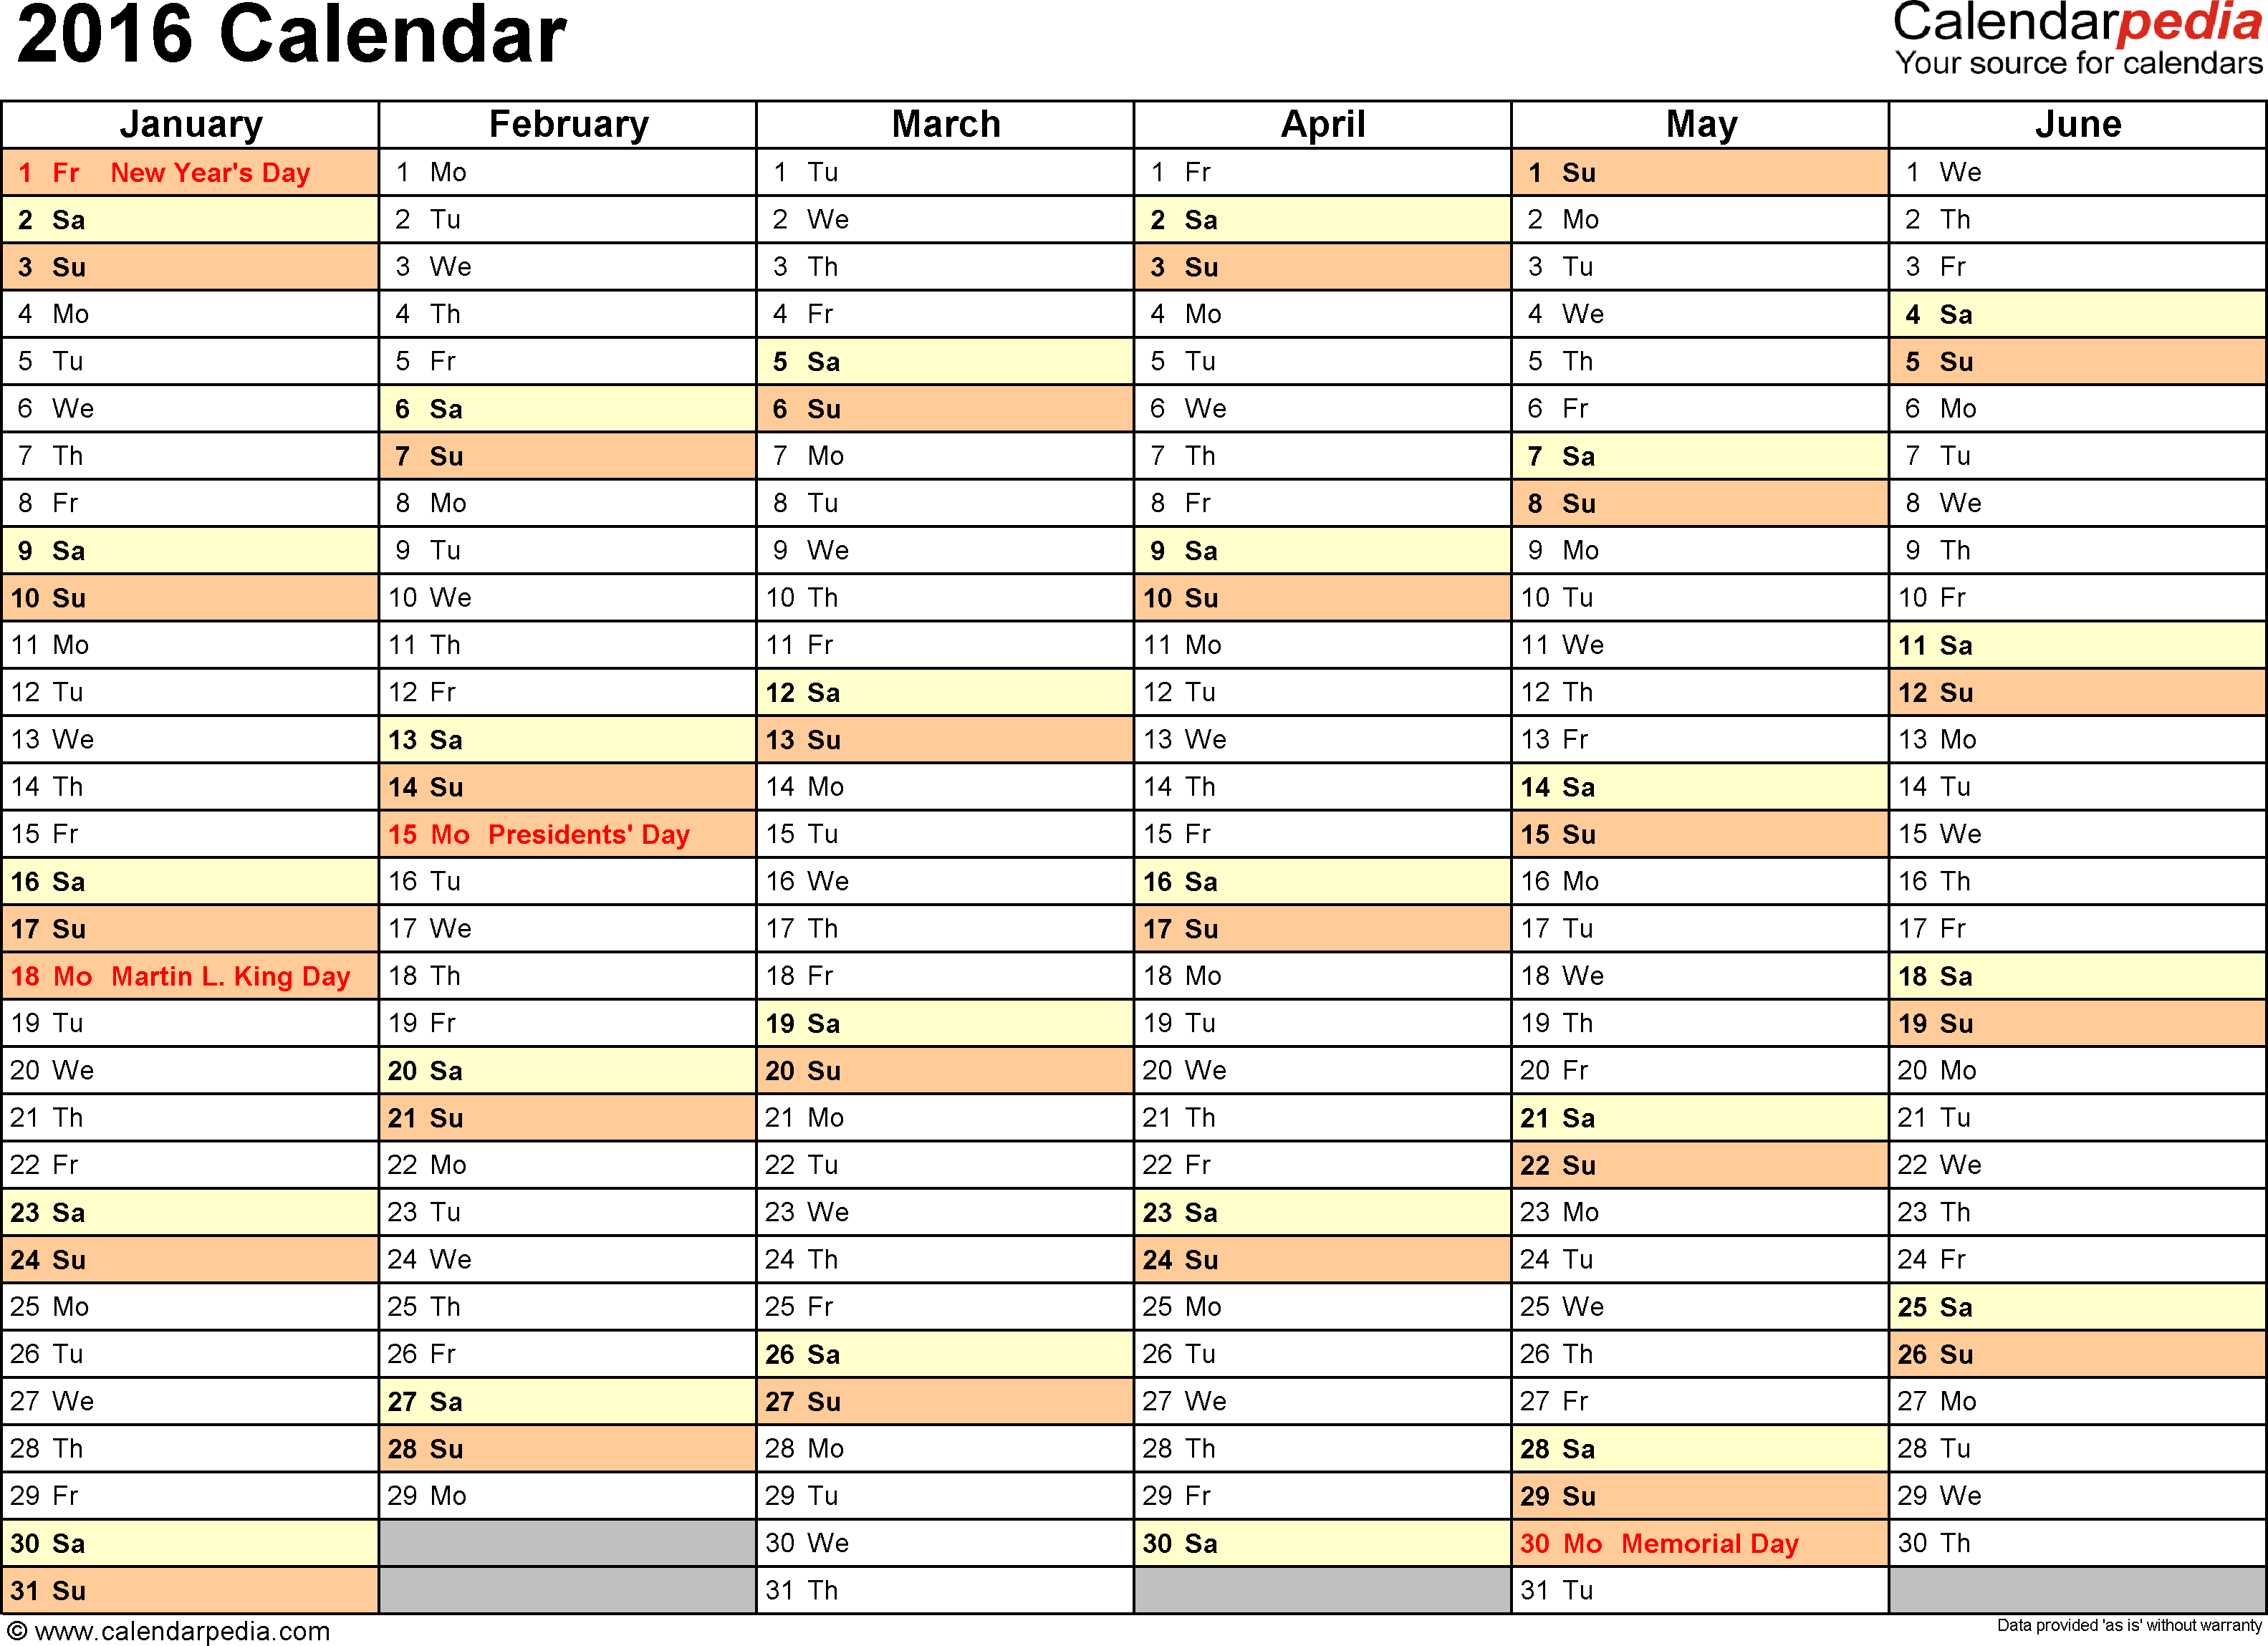 Ediblewildsus  Stunning  Calendar  Download  Free Printable Excel Templates Xls With Likable Template   Calendar For Excel Months Horizontally  Pages Landscape Orientation With Agreeable Separate Columns In Excel Also Excel Accounting Number Format In Addition Excel Vba Case Statement And Time Function Excel As Well As Microsoft Excel Training Courses Additionally Excel Add Footer From Calendarpediacom With Ediblewildsus  Likable  Calendar  Download  Free Printable Excel Templates Xls With Agreeable Template   Calendar For Excel Months Horizontally  Pages Landscape Orientation And Stunning Separate Columns In Excel Also Excel Accounting Number Format In Addition Excel Vba Case Statement From Calendarpediacom